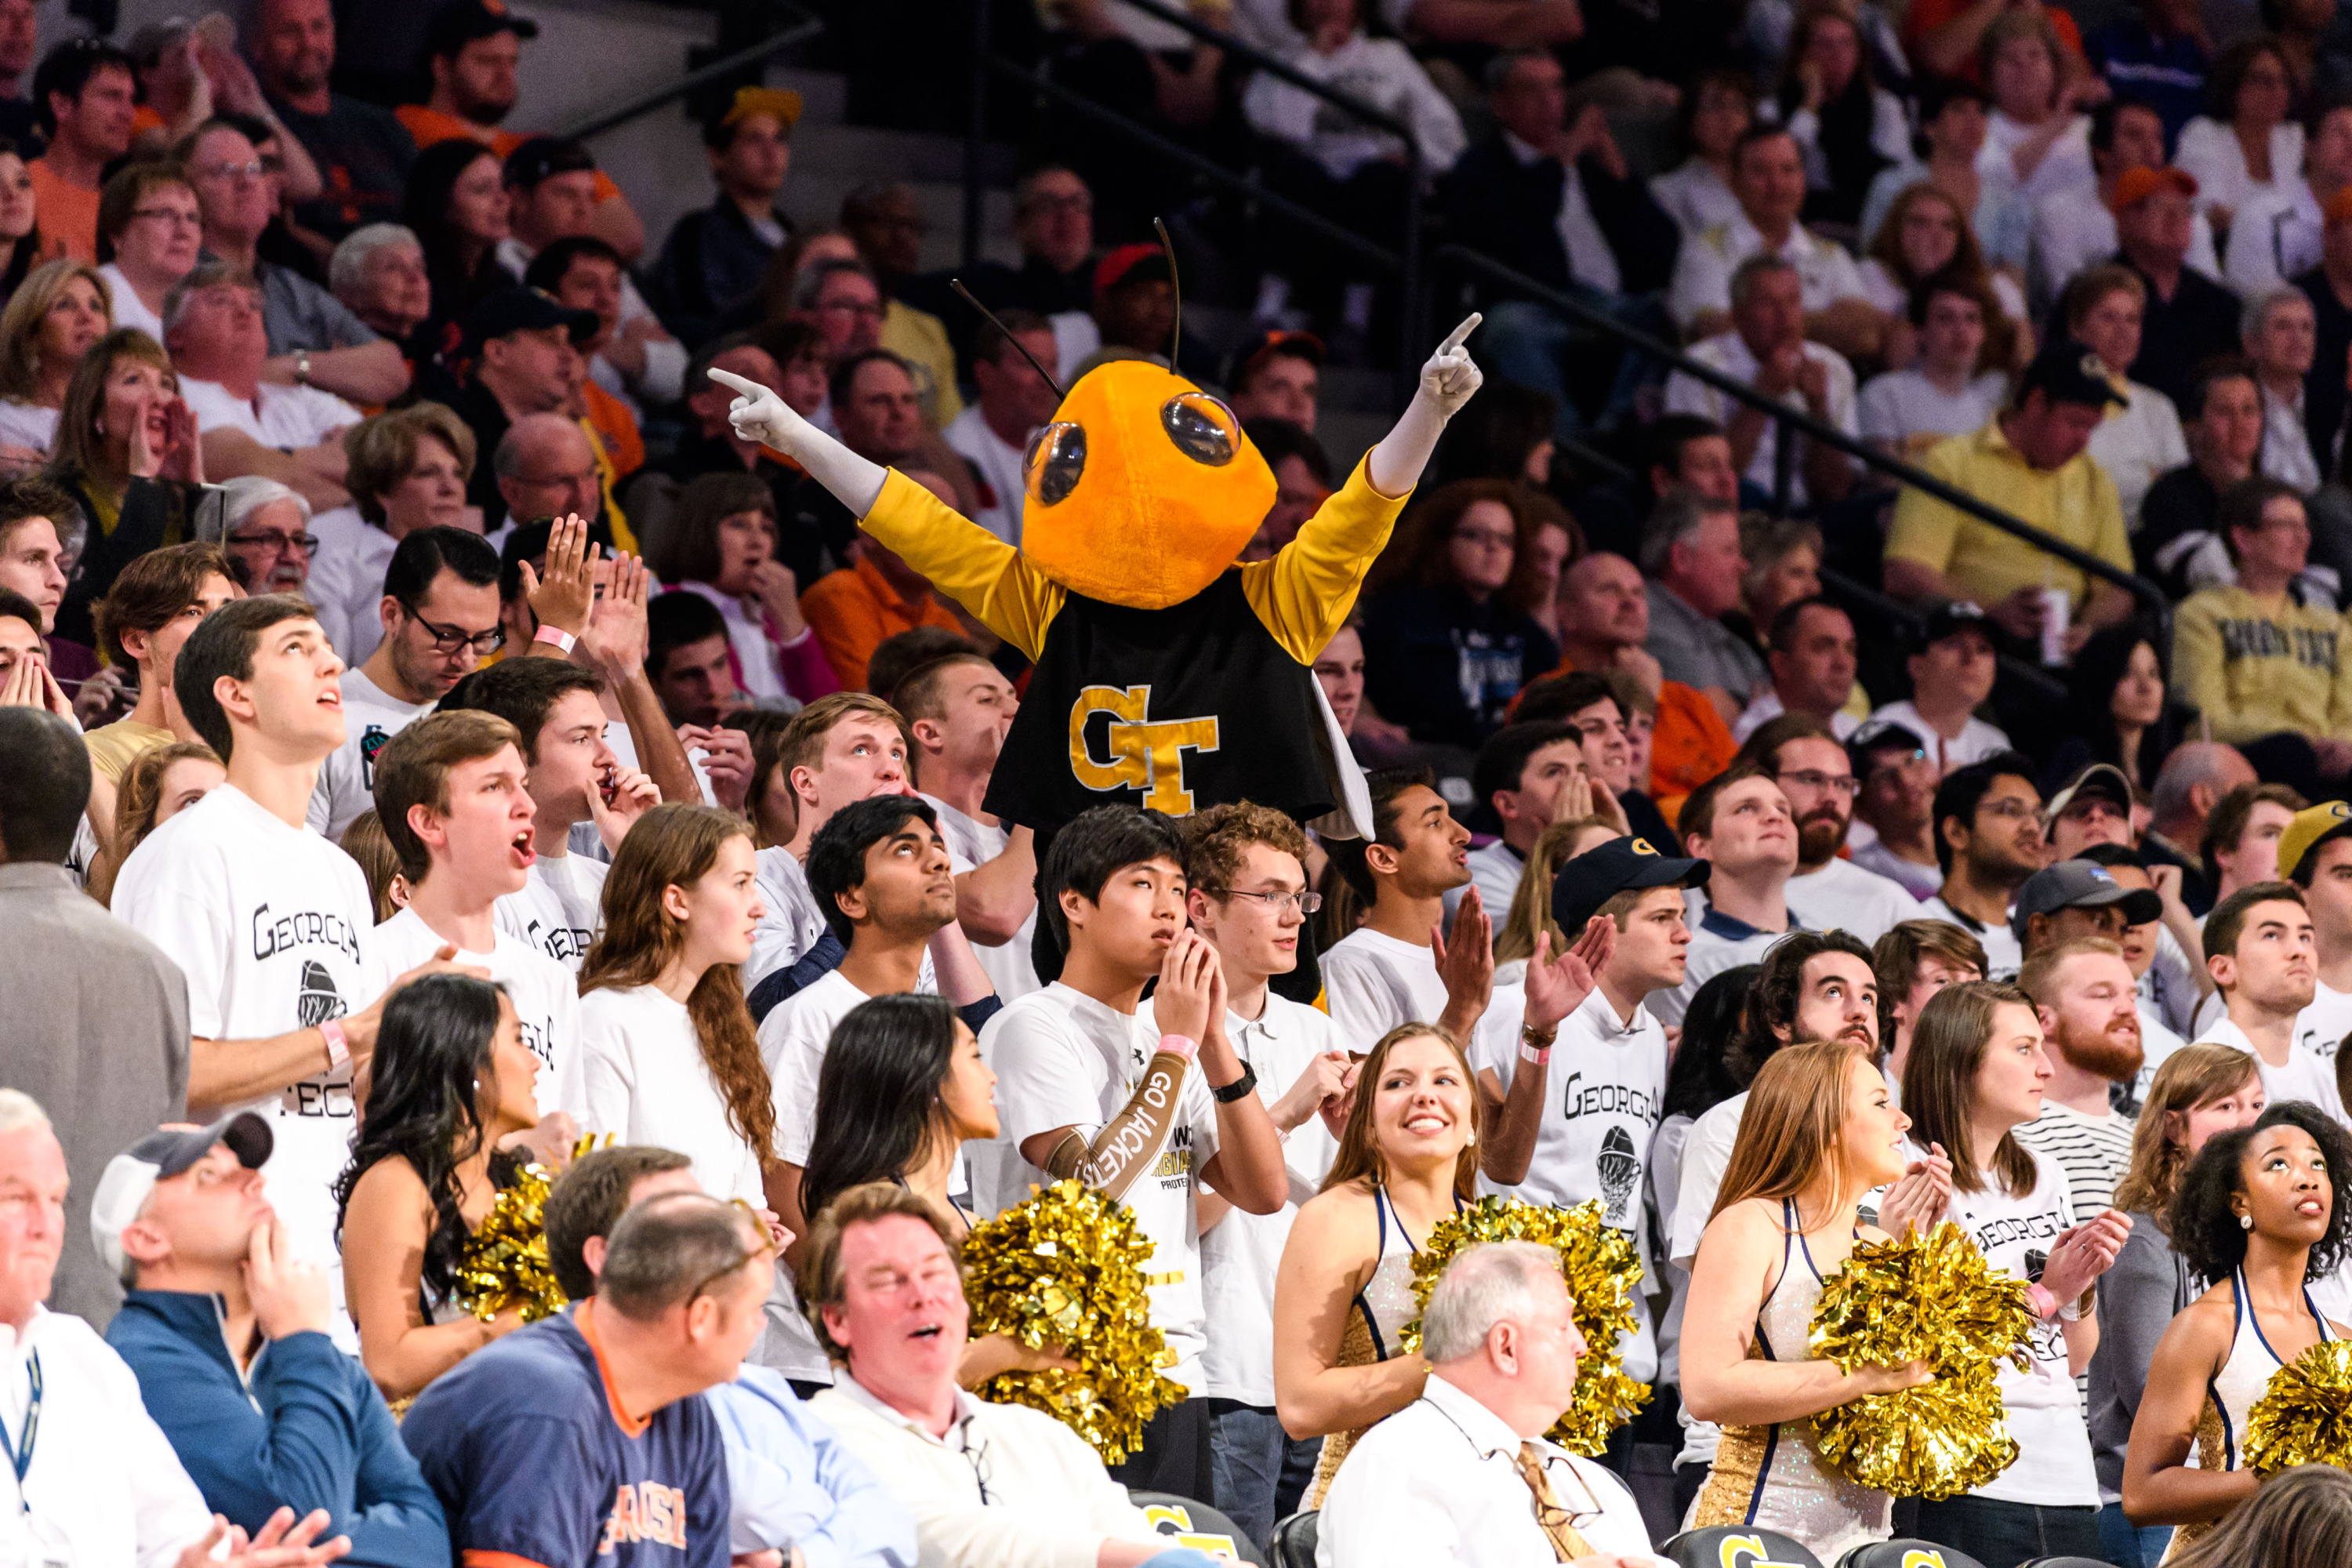 Buzz stands shoulders above the student section